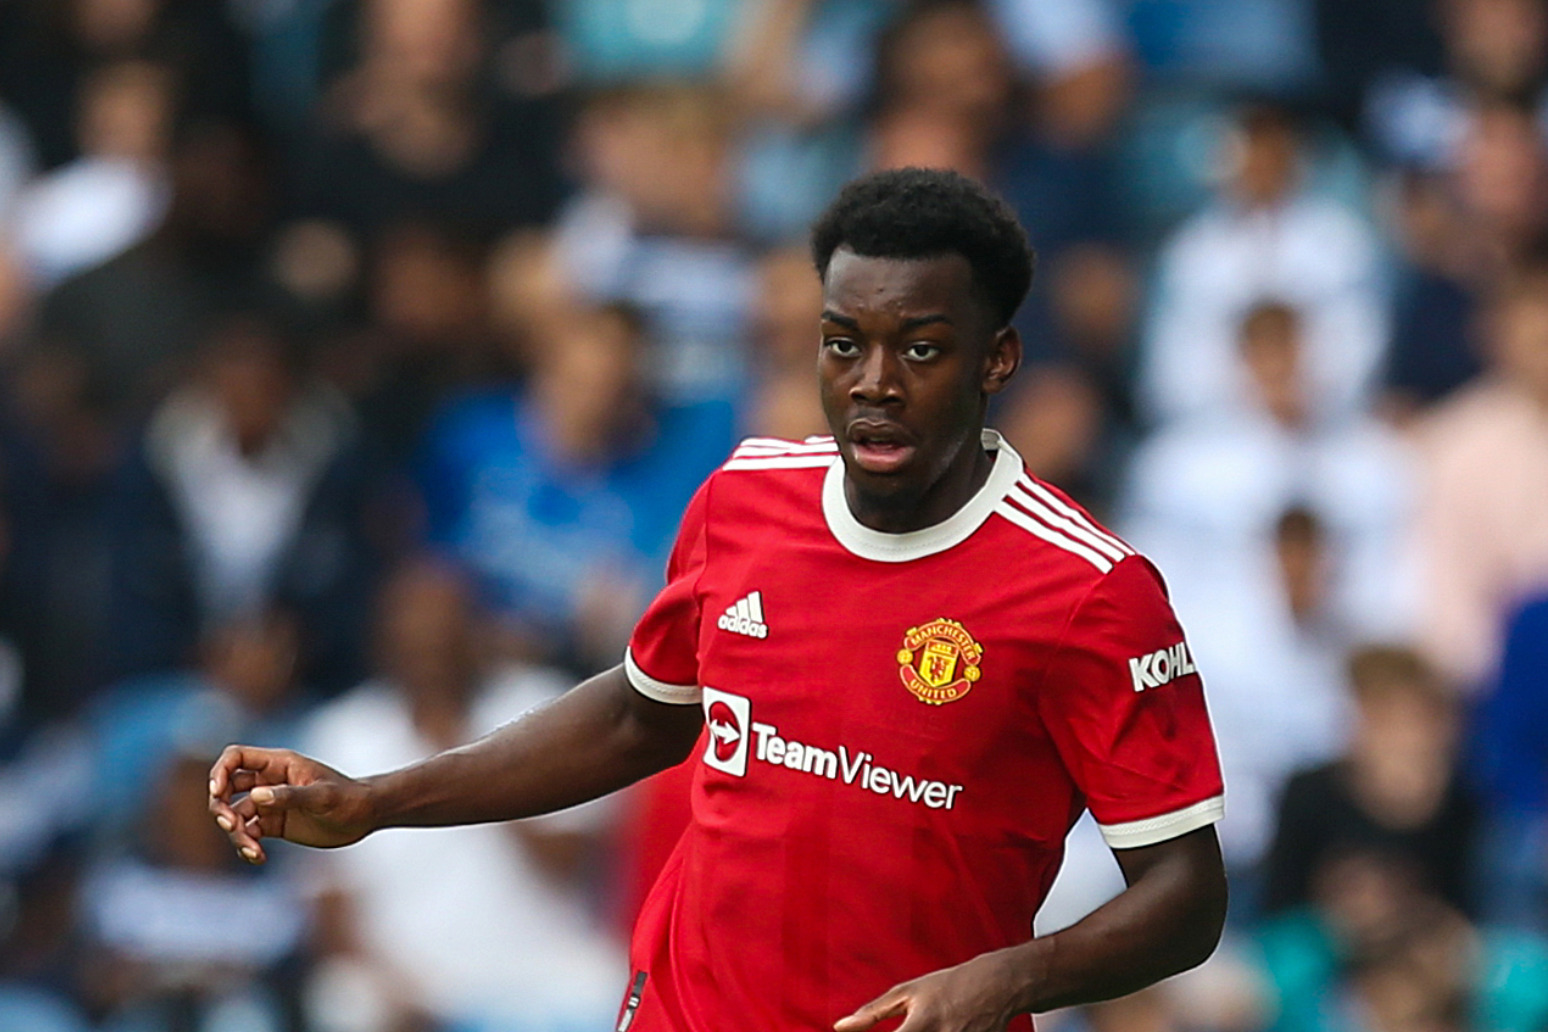 Manchester United's Anthony Elanga 'racially abused' in Sweden Under-21s game